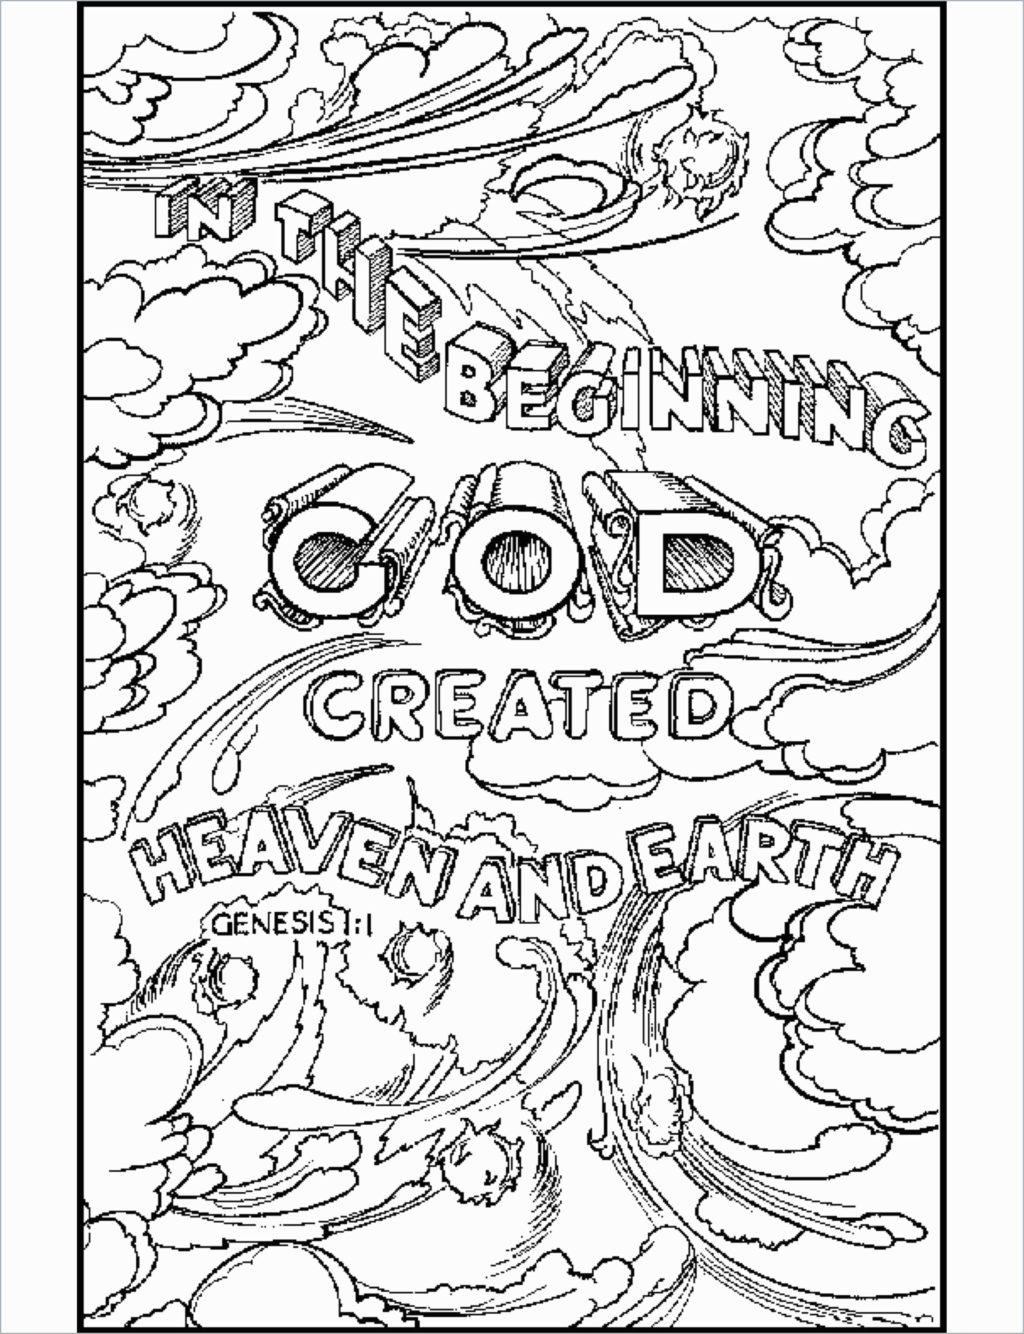 Coloring Book World ~ Coloring Book World Christian Pages For Adults - Free Printable Bible Coloring Pages